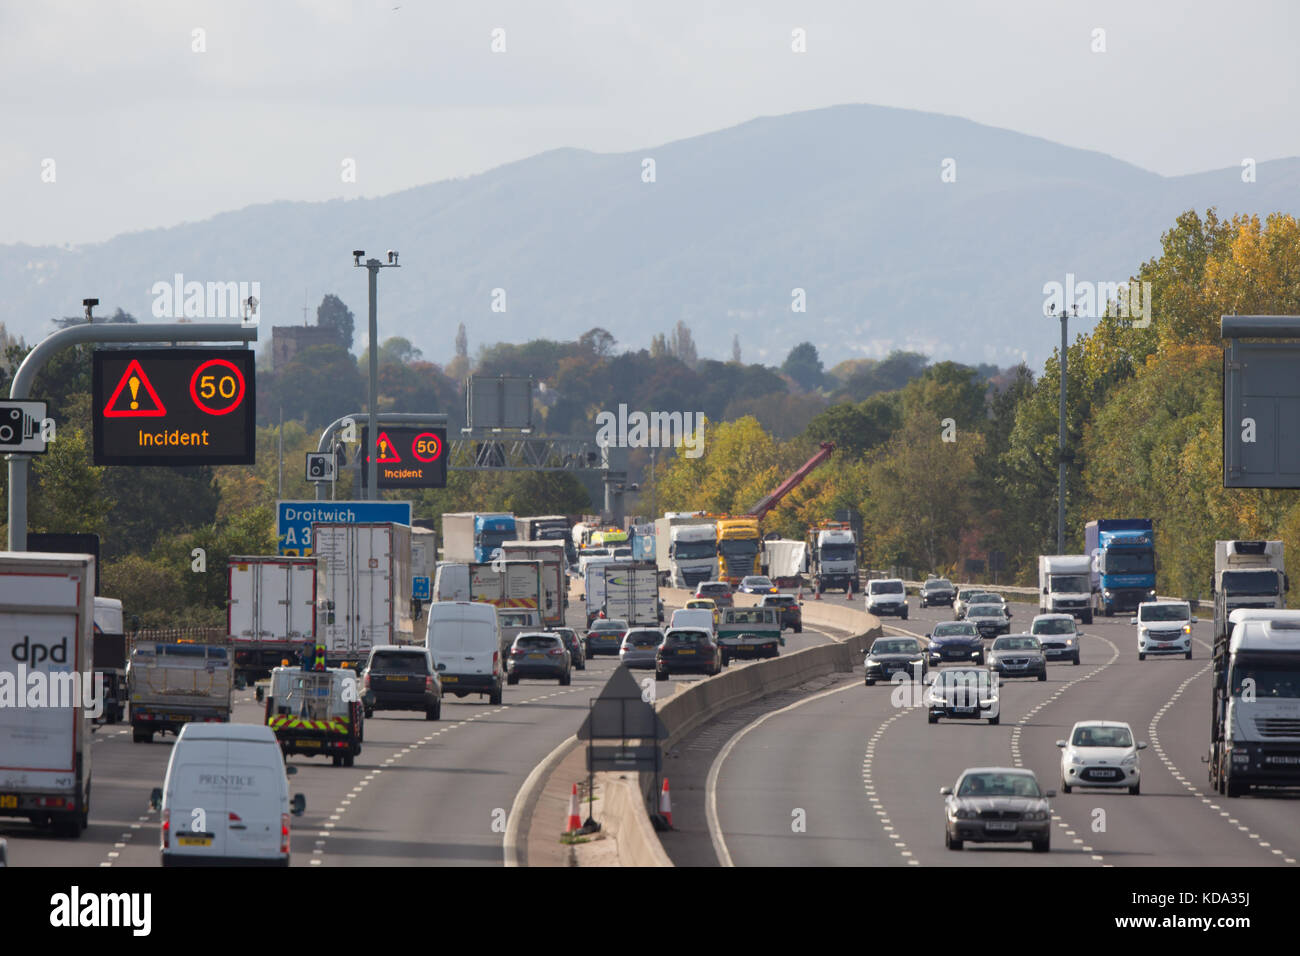 Droitwich, UK. 12th Oct, 2017. Recovery vehicles on the scene at UK M5 motorway, near Droitwich, rescuing HGV lorry from embankment. Traffic delays continue. Credit: Lee Hudson/Alamy Live News Stock Photo